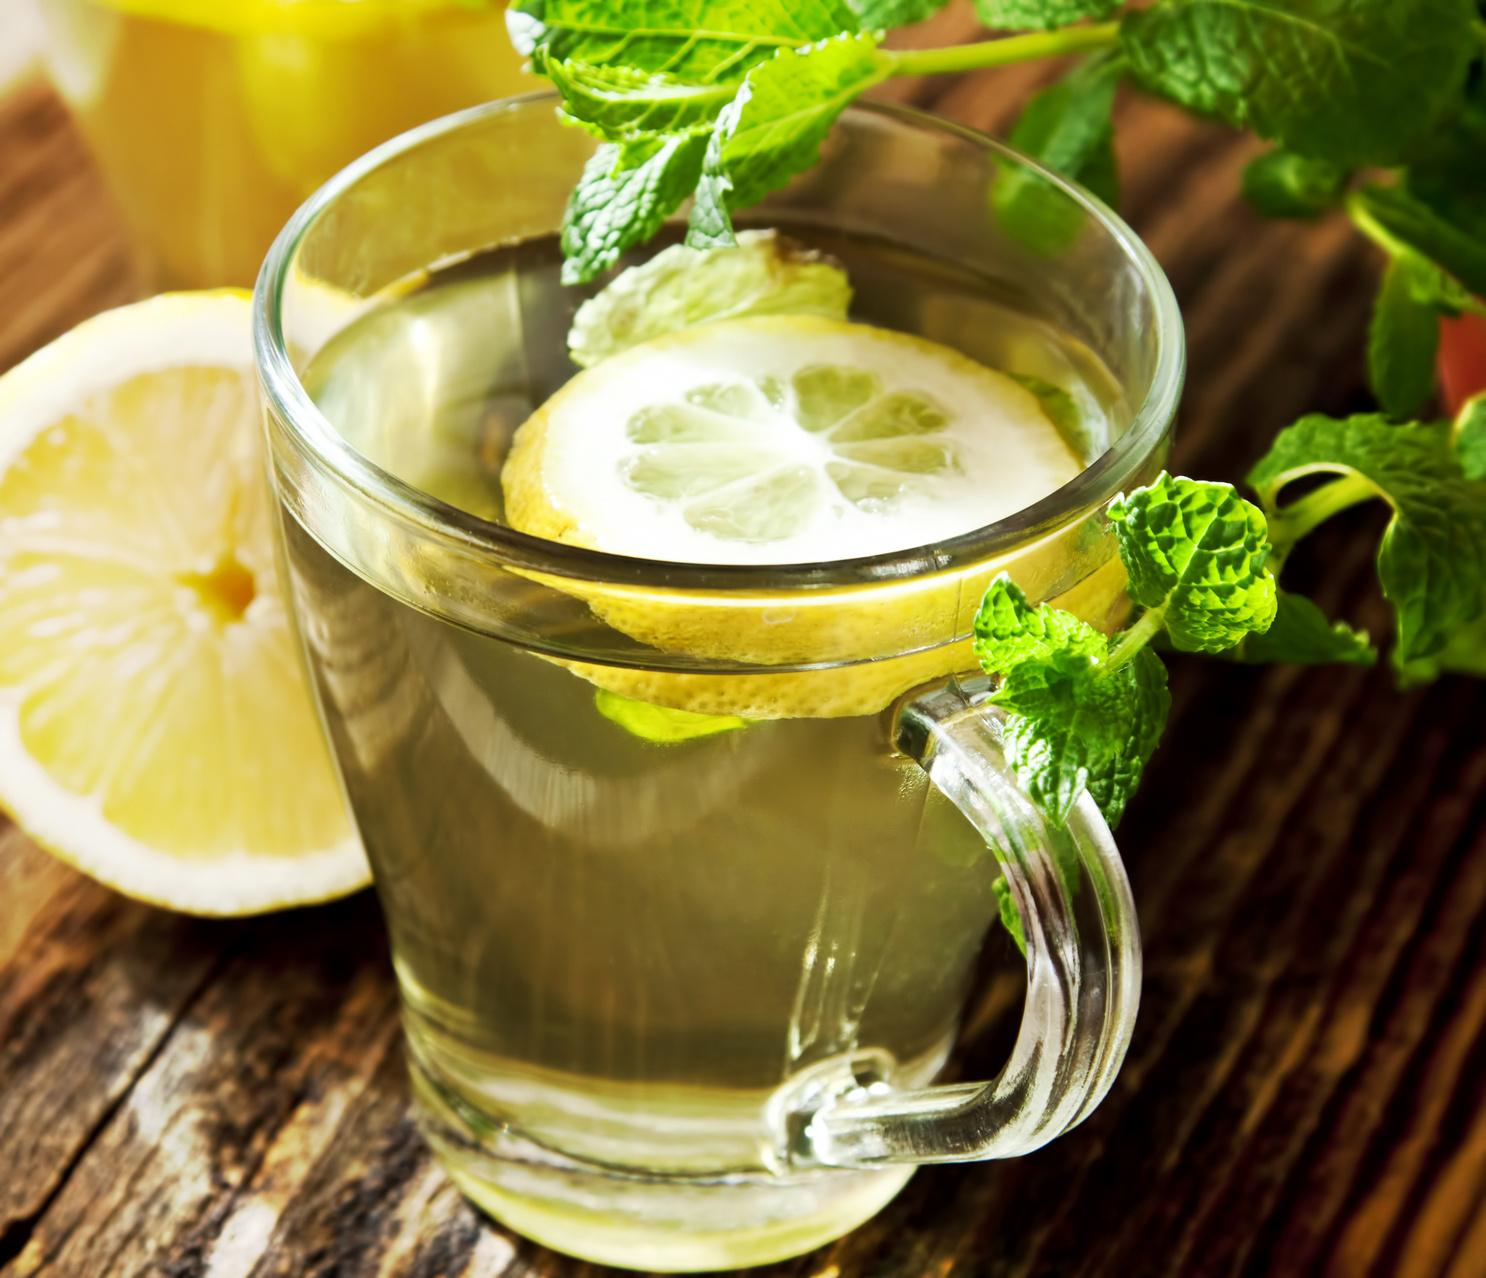 The health benefits of warm water and lemon